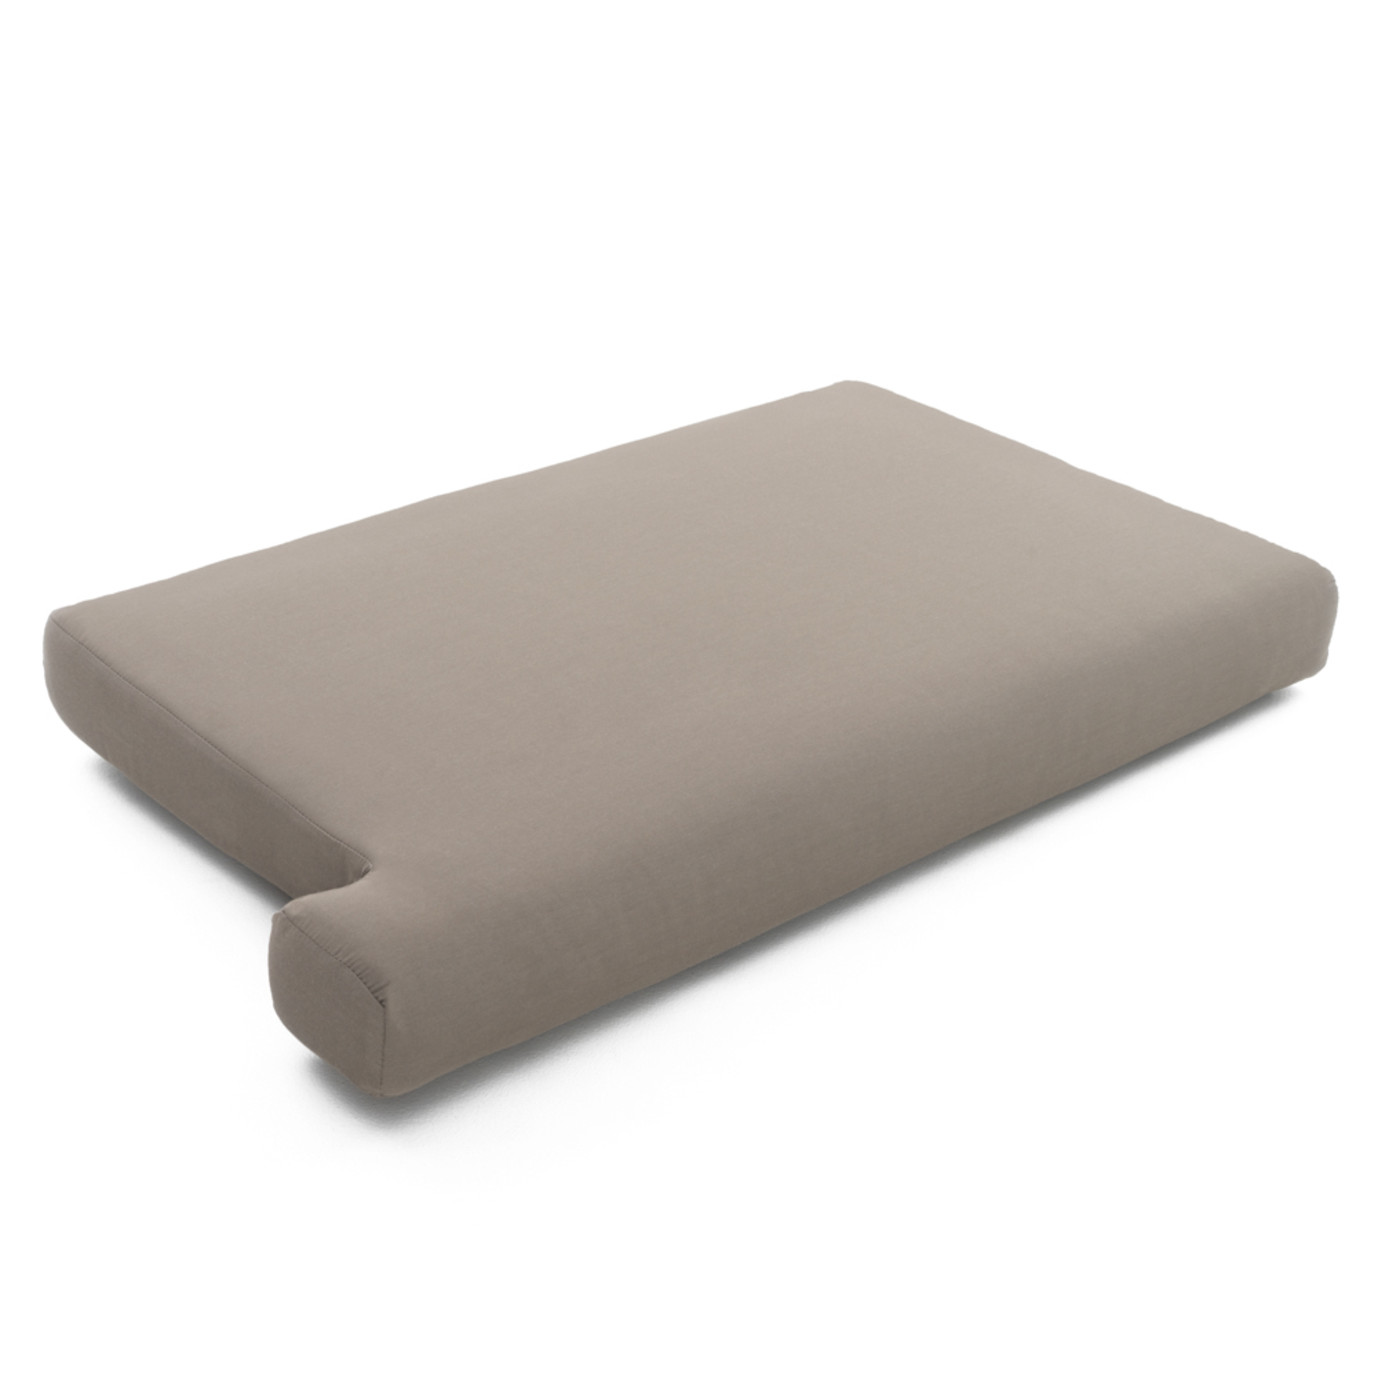 Portofino™ Comfort 96in Sofa Right Base Cushion - Kona Taupe